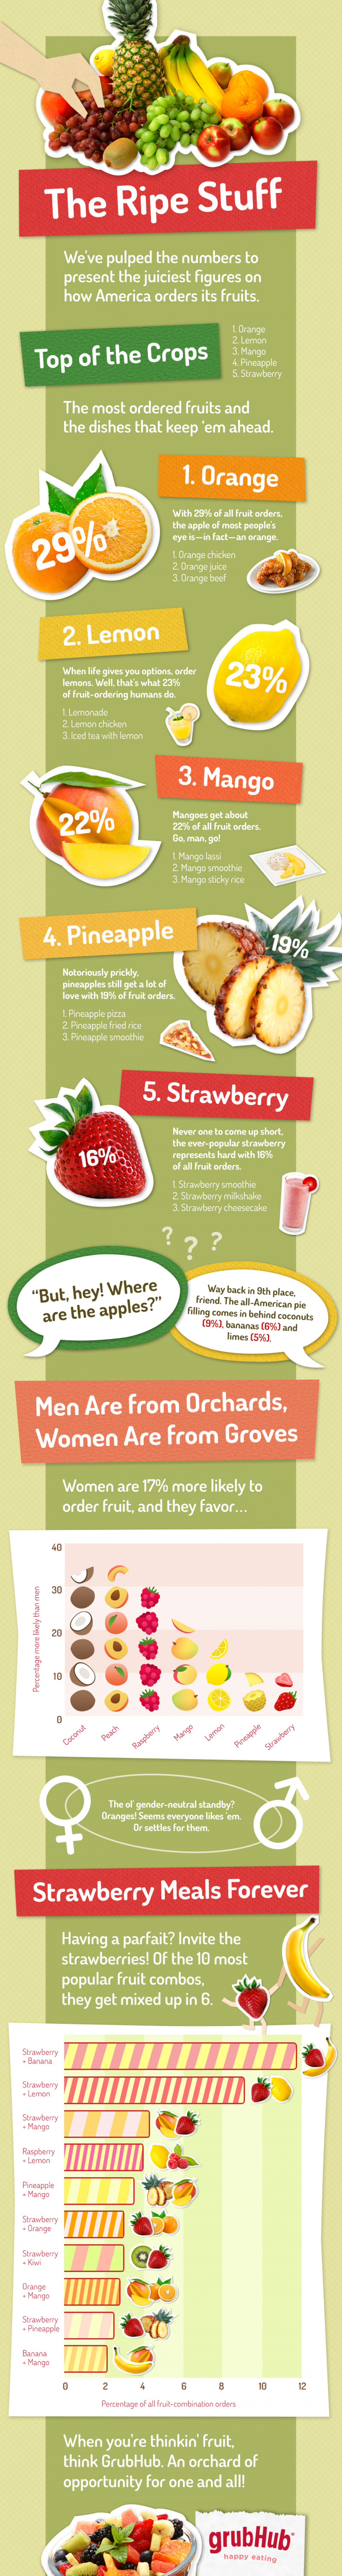 The Ripe Stuff Infographic